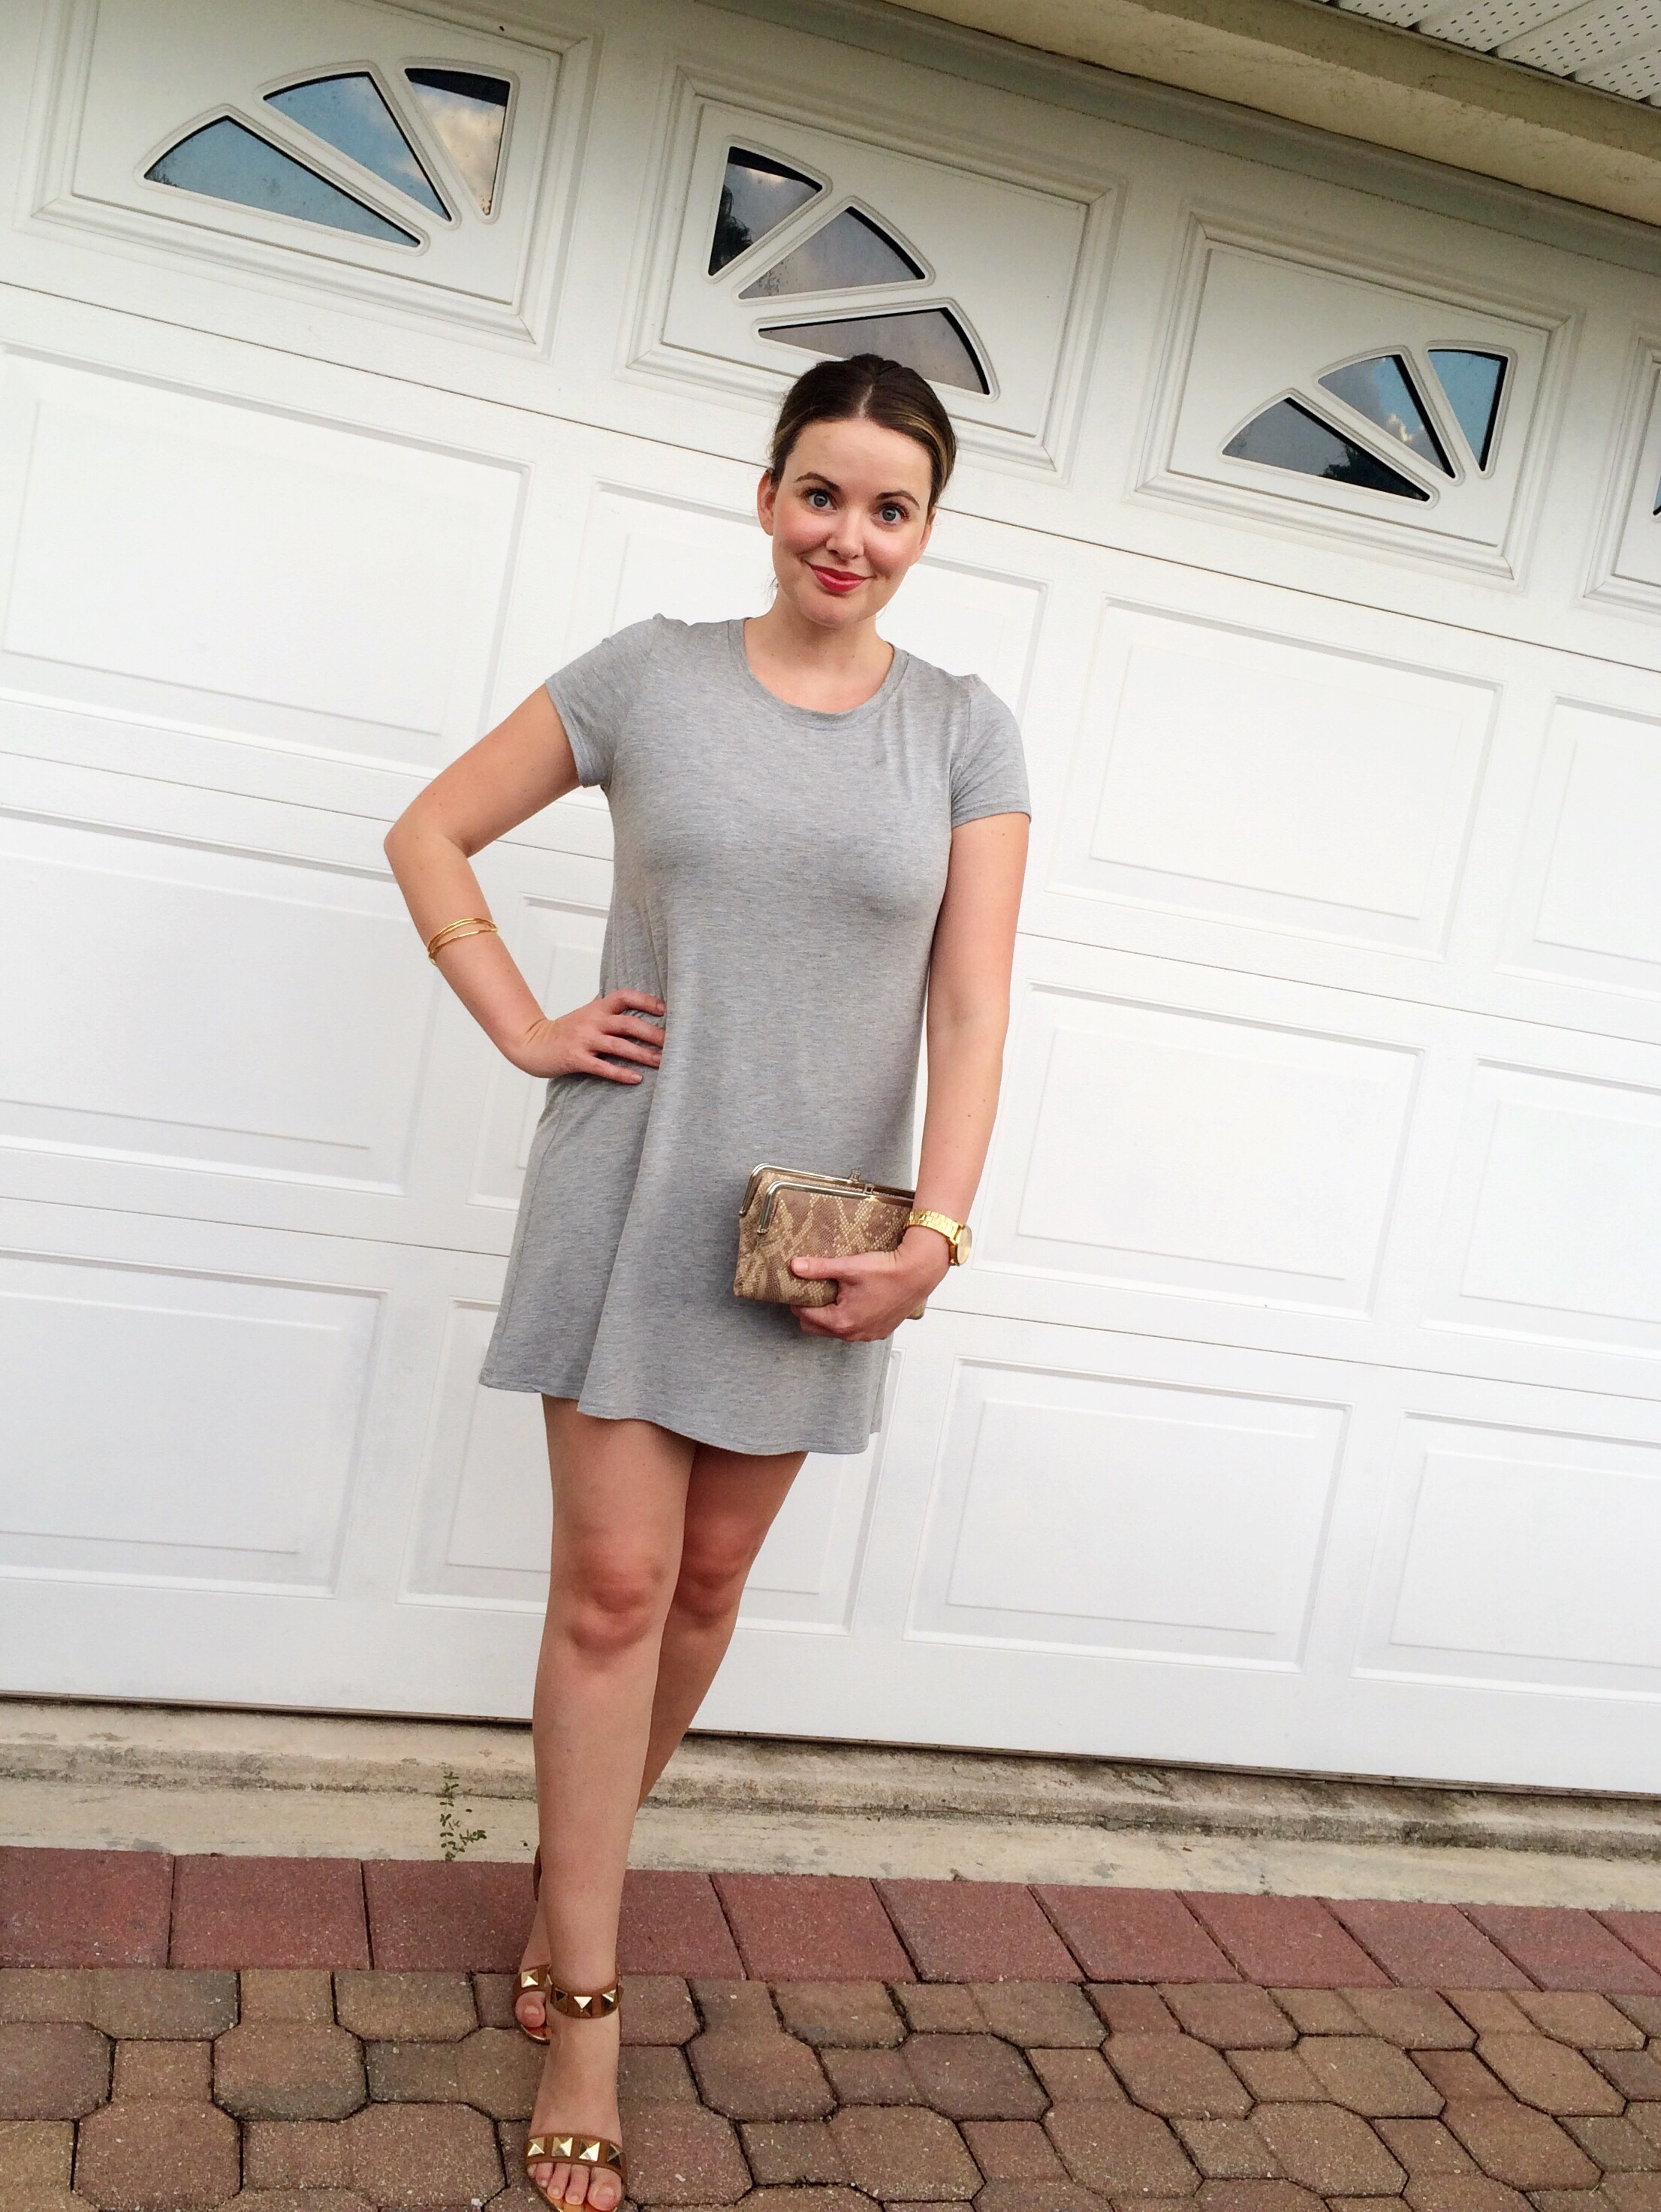 A Pretty Penny, T-Shirt Dress, Casual Style, Summer Outfit Ideas, OOTD, Neutrals, Closet Basics